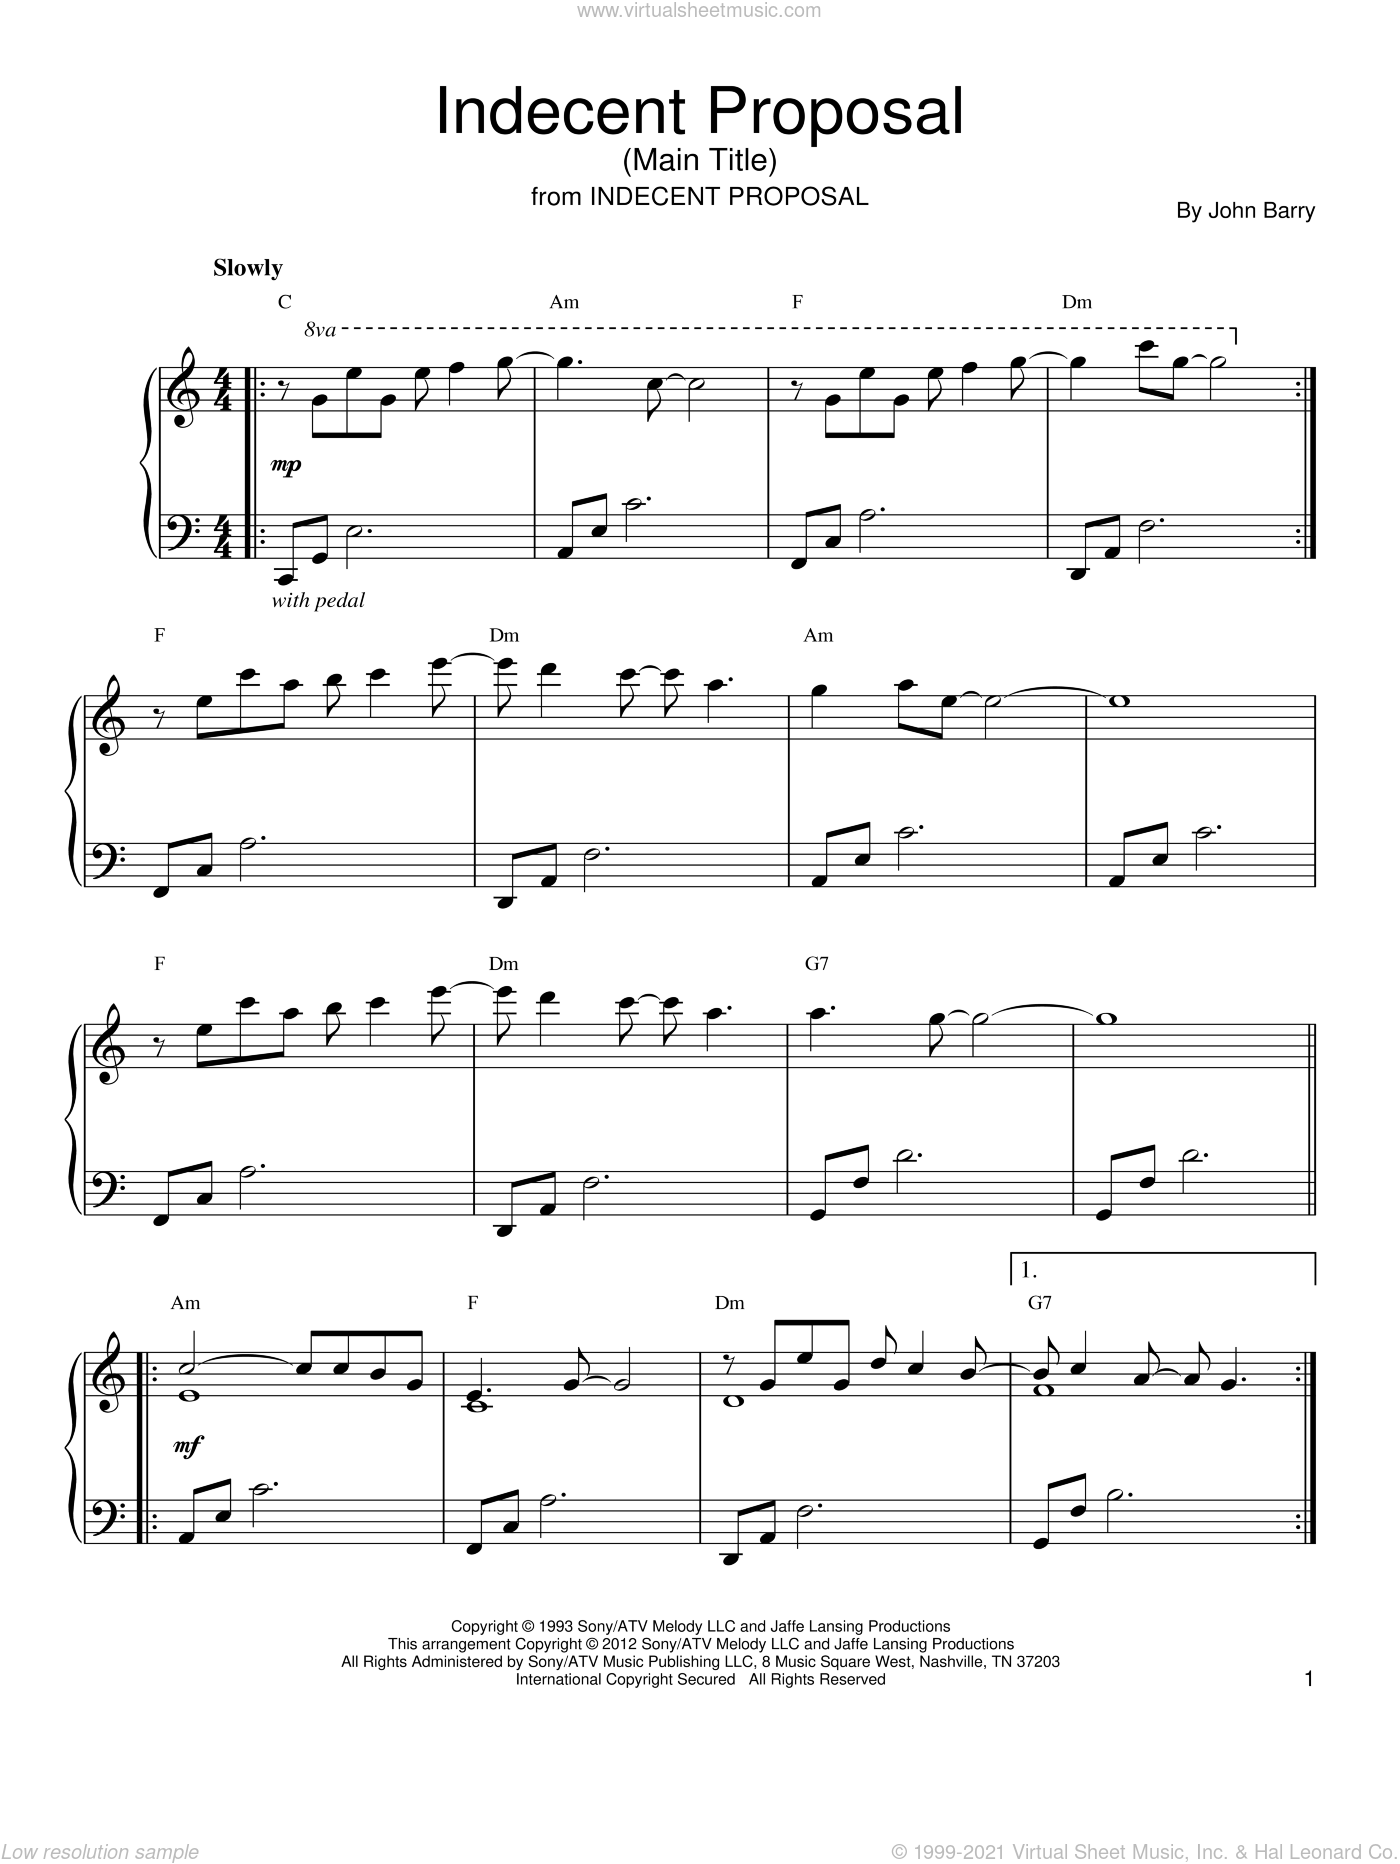 Indecent Proposal (Main Theme) sheet music for piano solo by John Barry, intermediate skill level